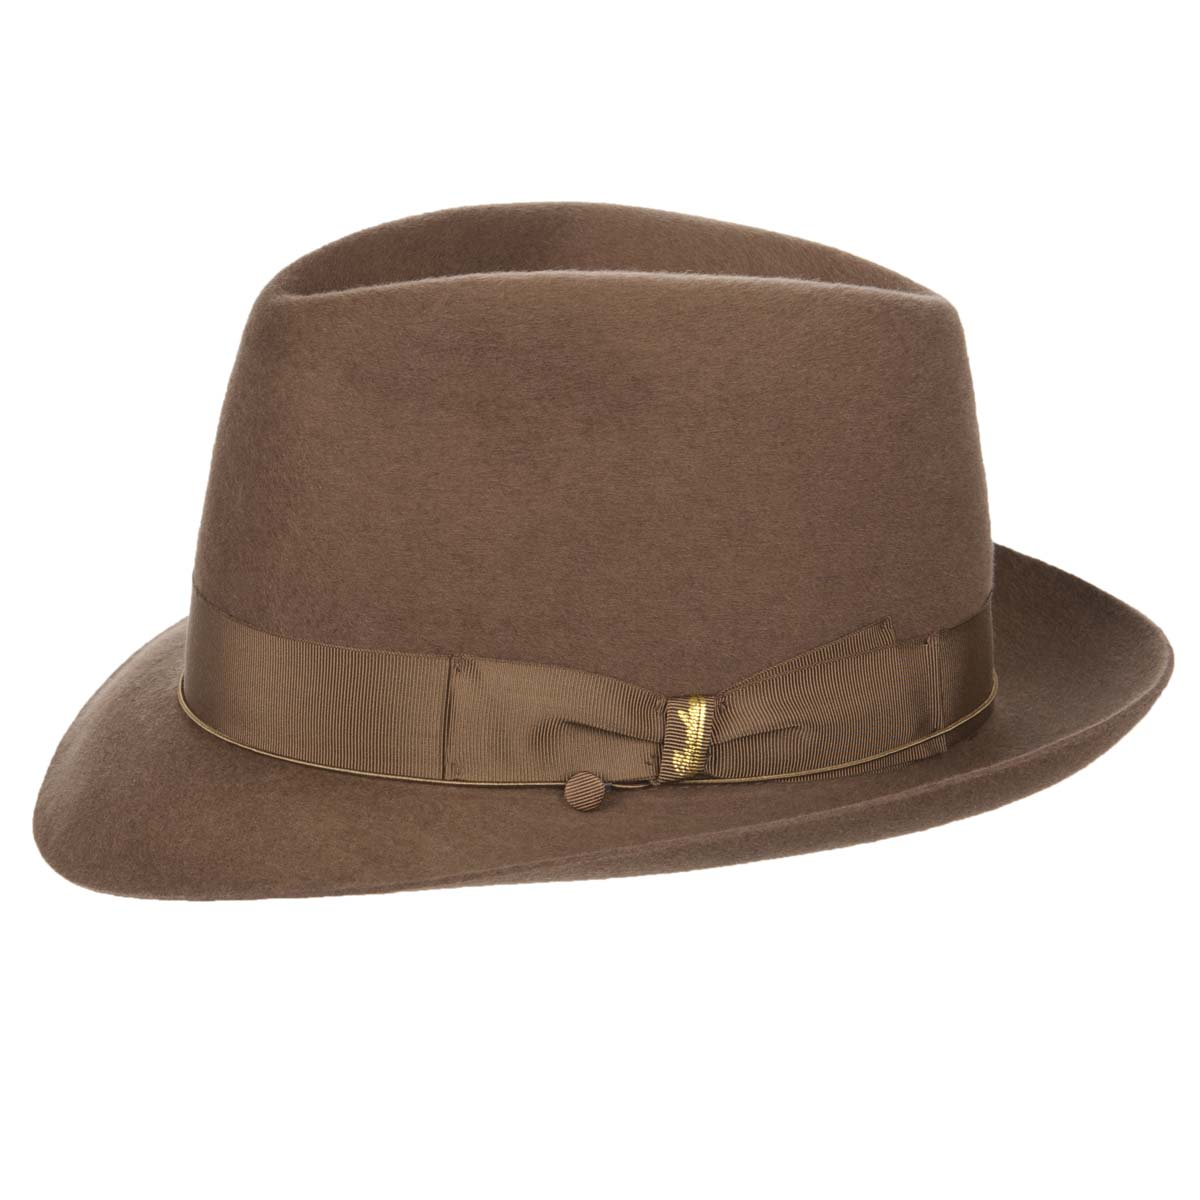 how to wear a wide brim hat